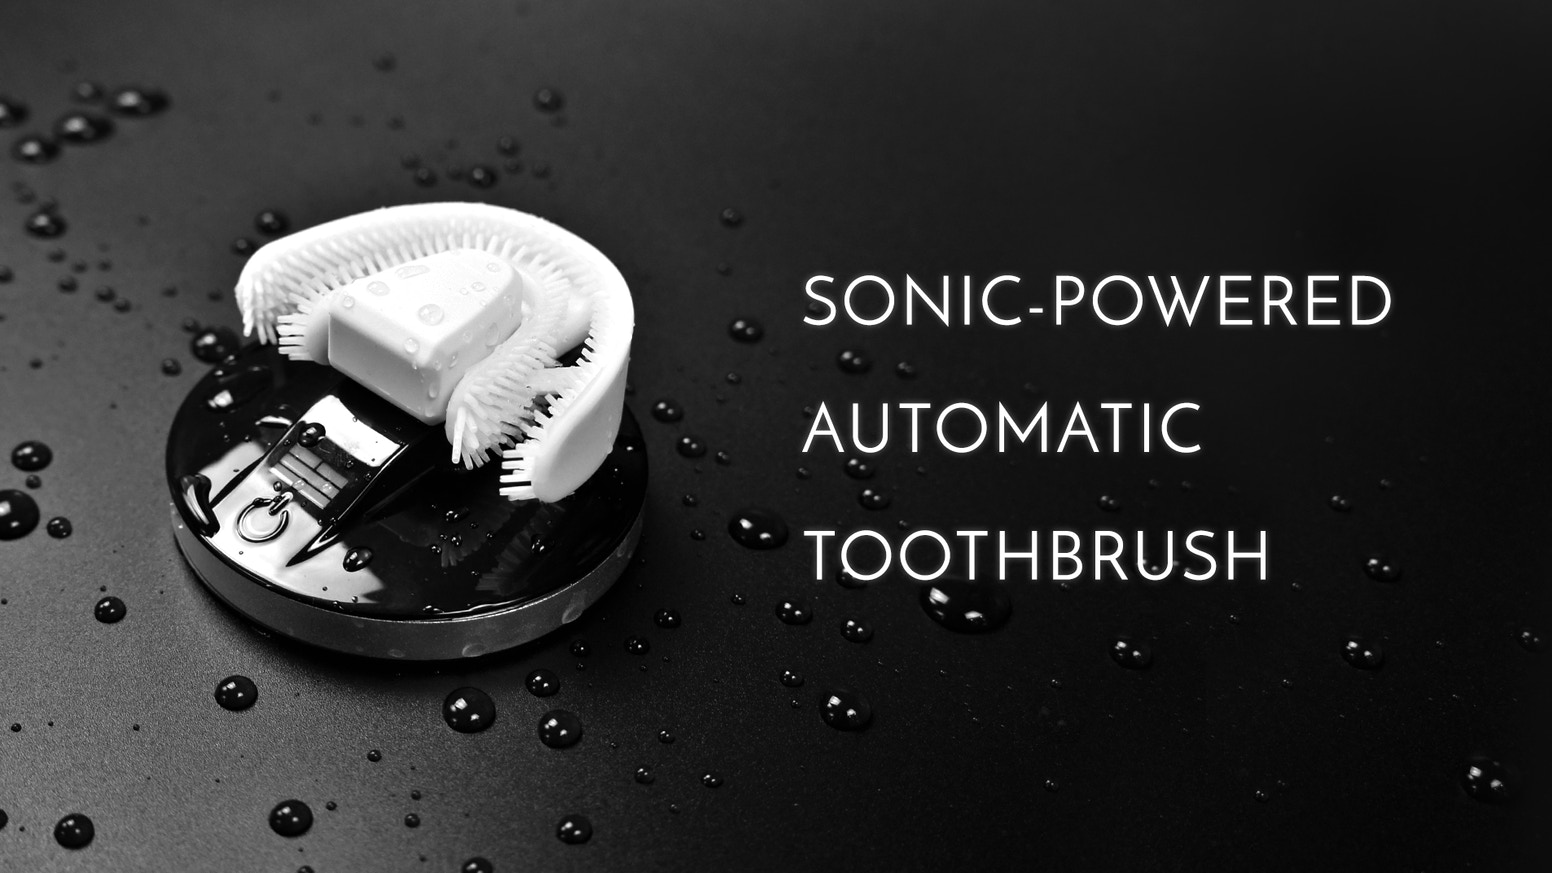 CHIIZ is a sonic-powered automatic toothbrush that helps you brush your teeth in a simple, efficient and correct way.